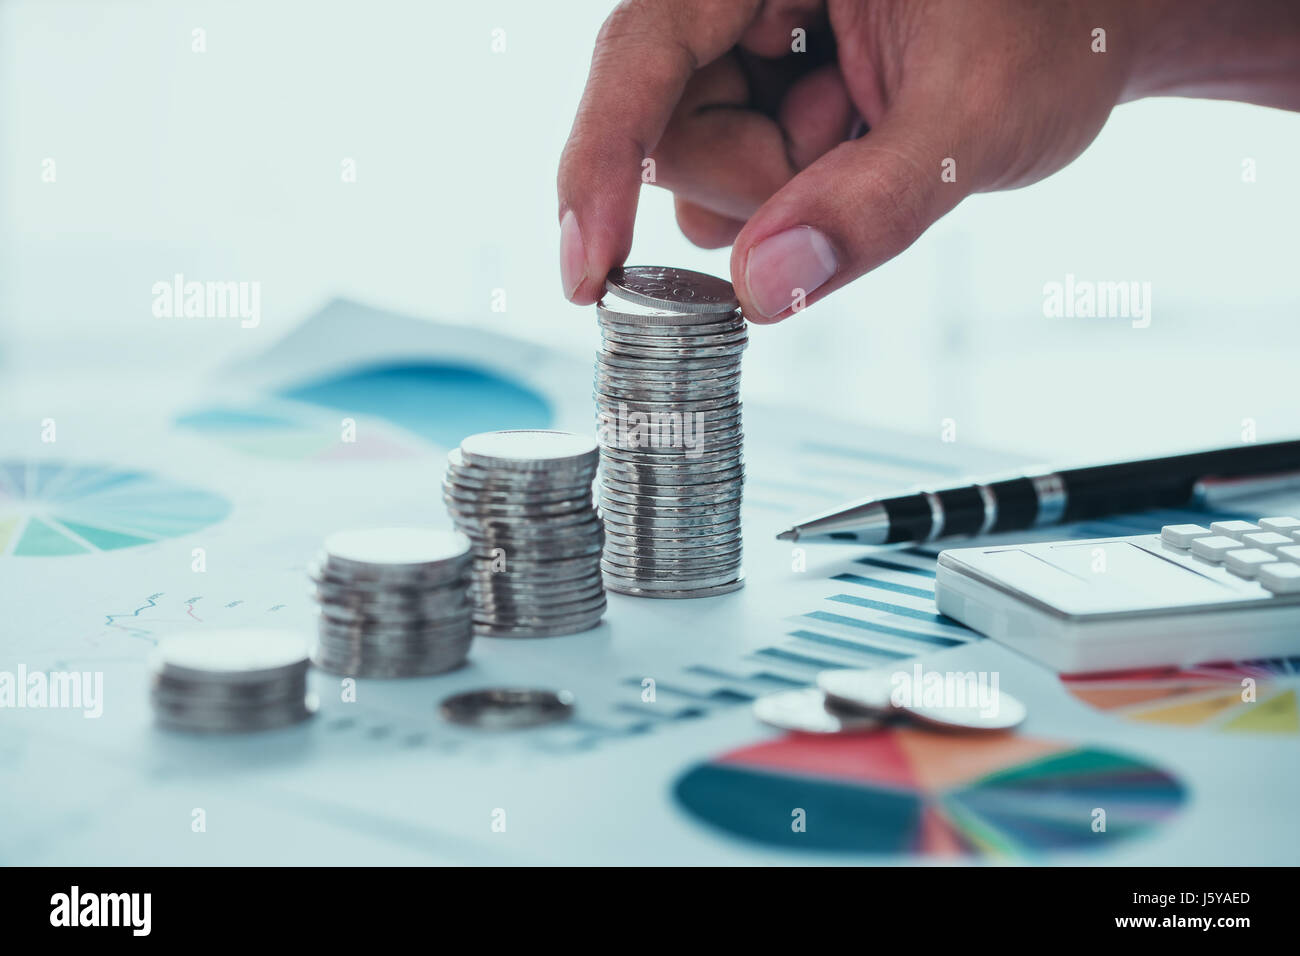 Business concept of saving money with coins and graph - Stock Image